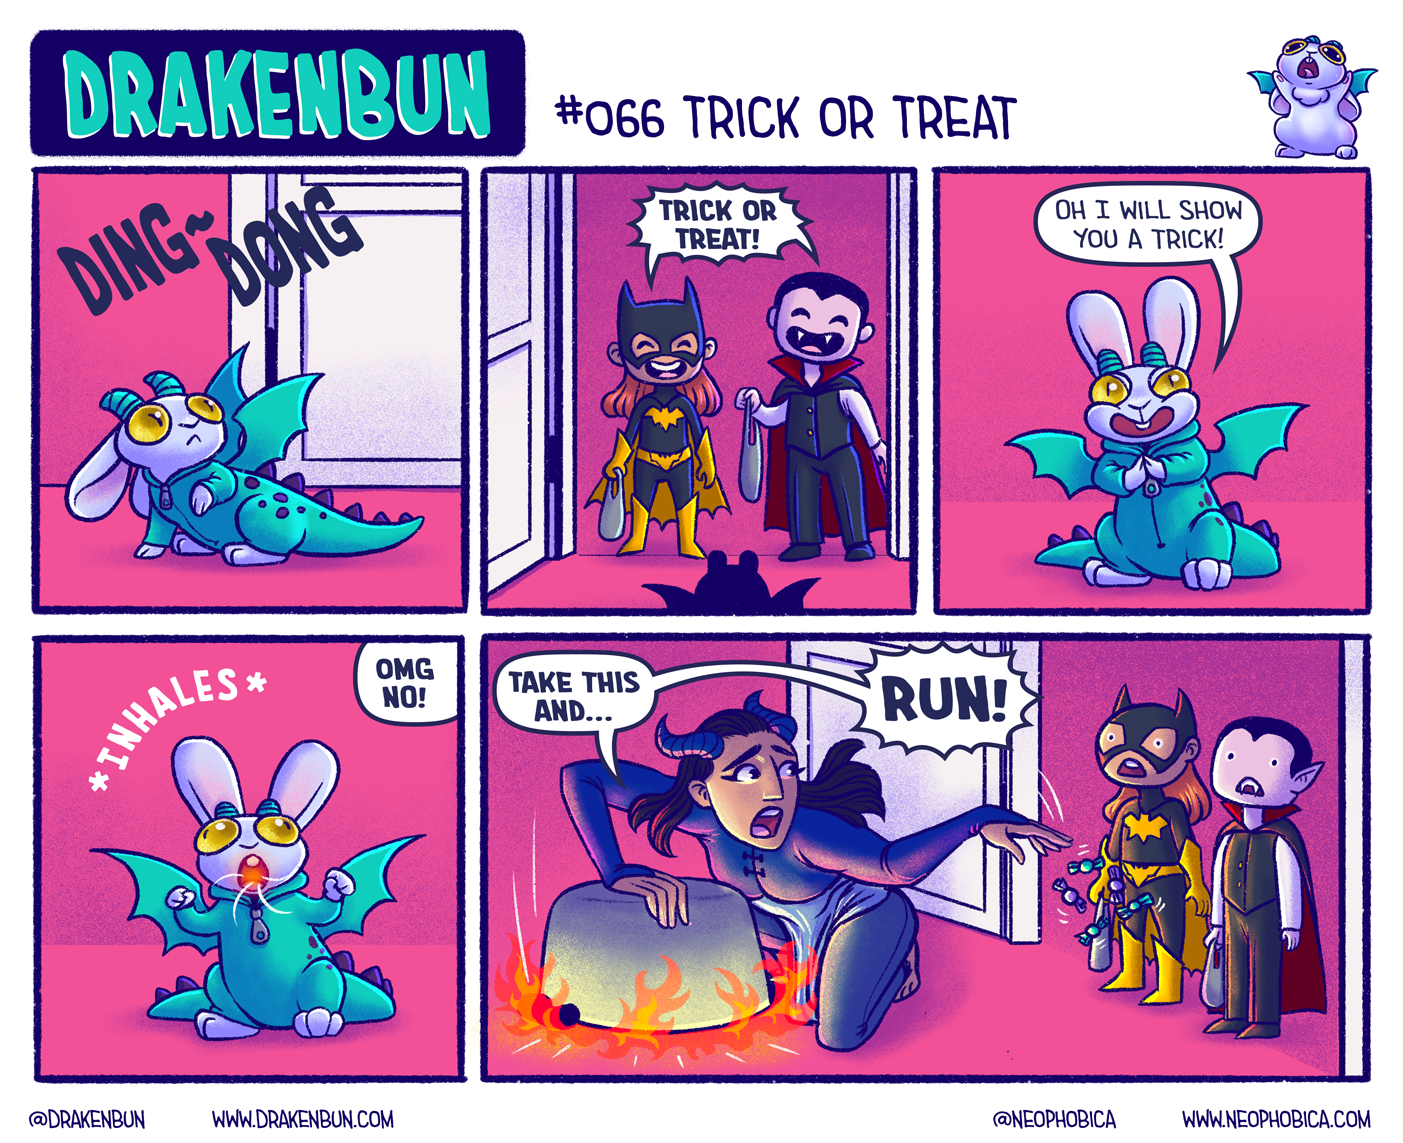 #066 Trick or Treat